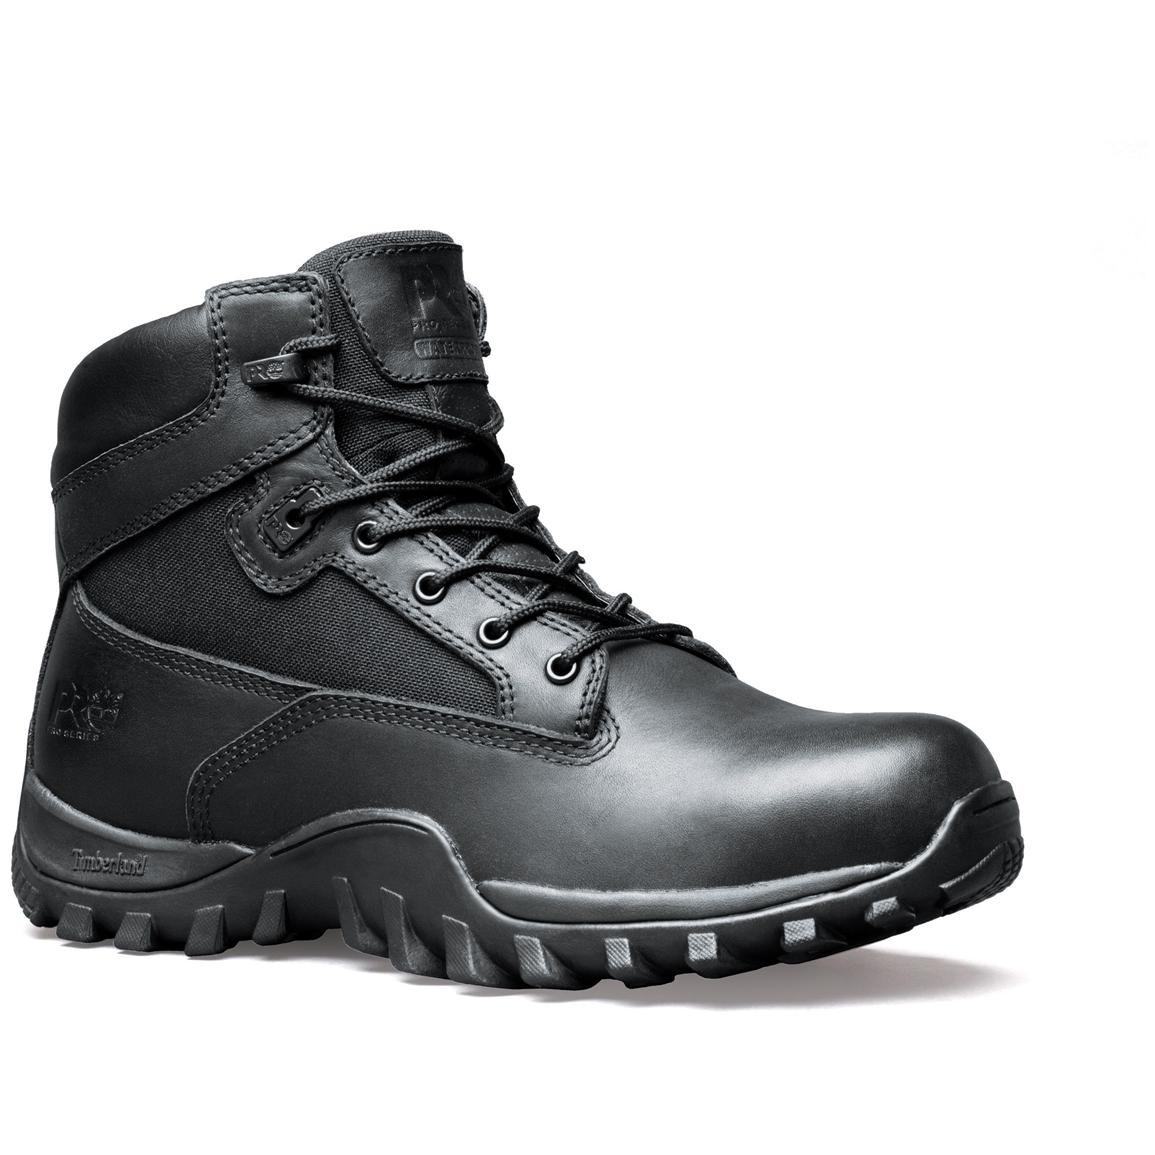 Men's Timberland PRO® Valor™ Series 6 inch McClellan Waterproof Soft Toe Duty Boots, Black